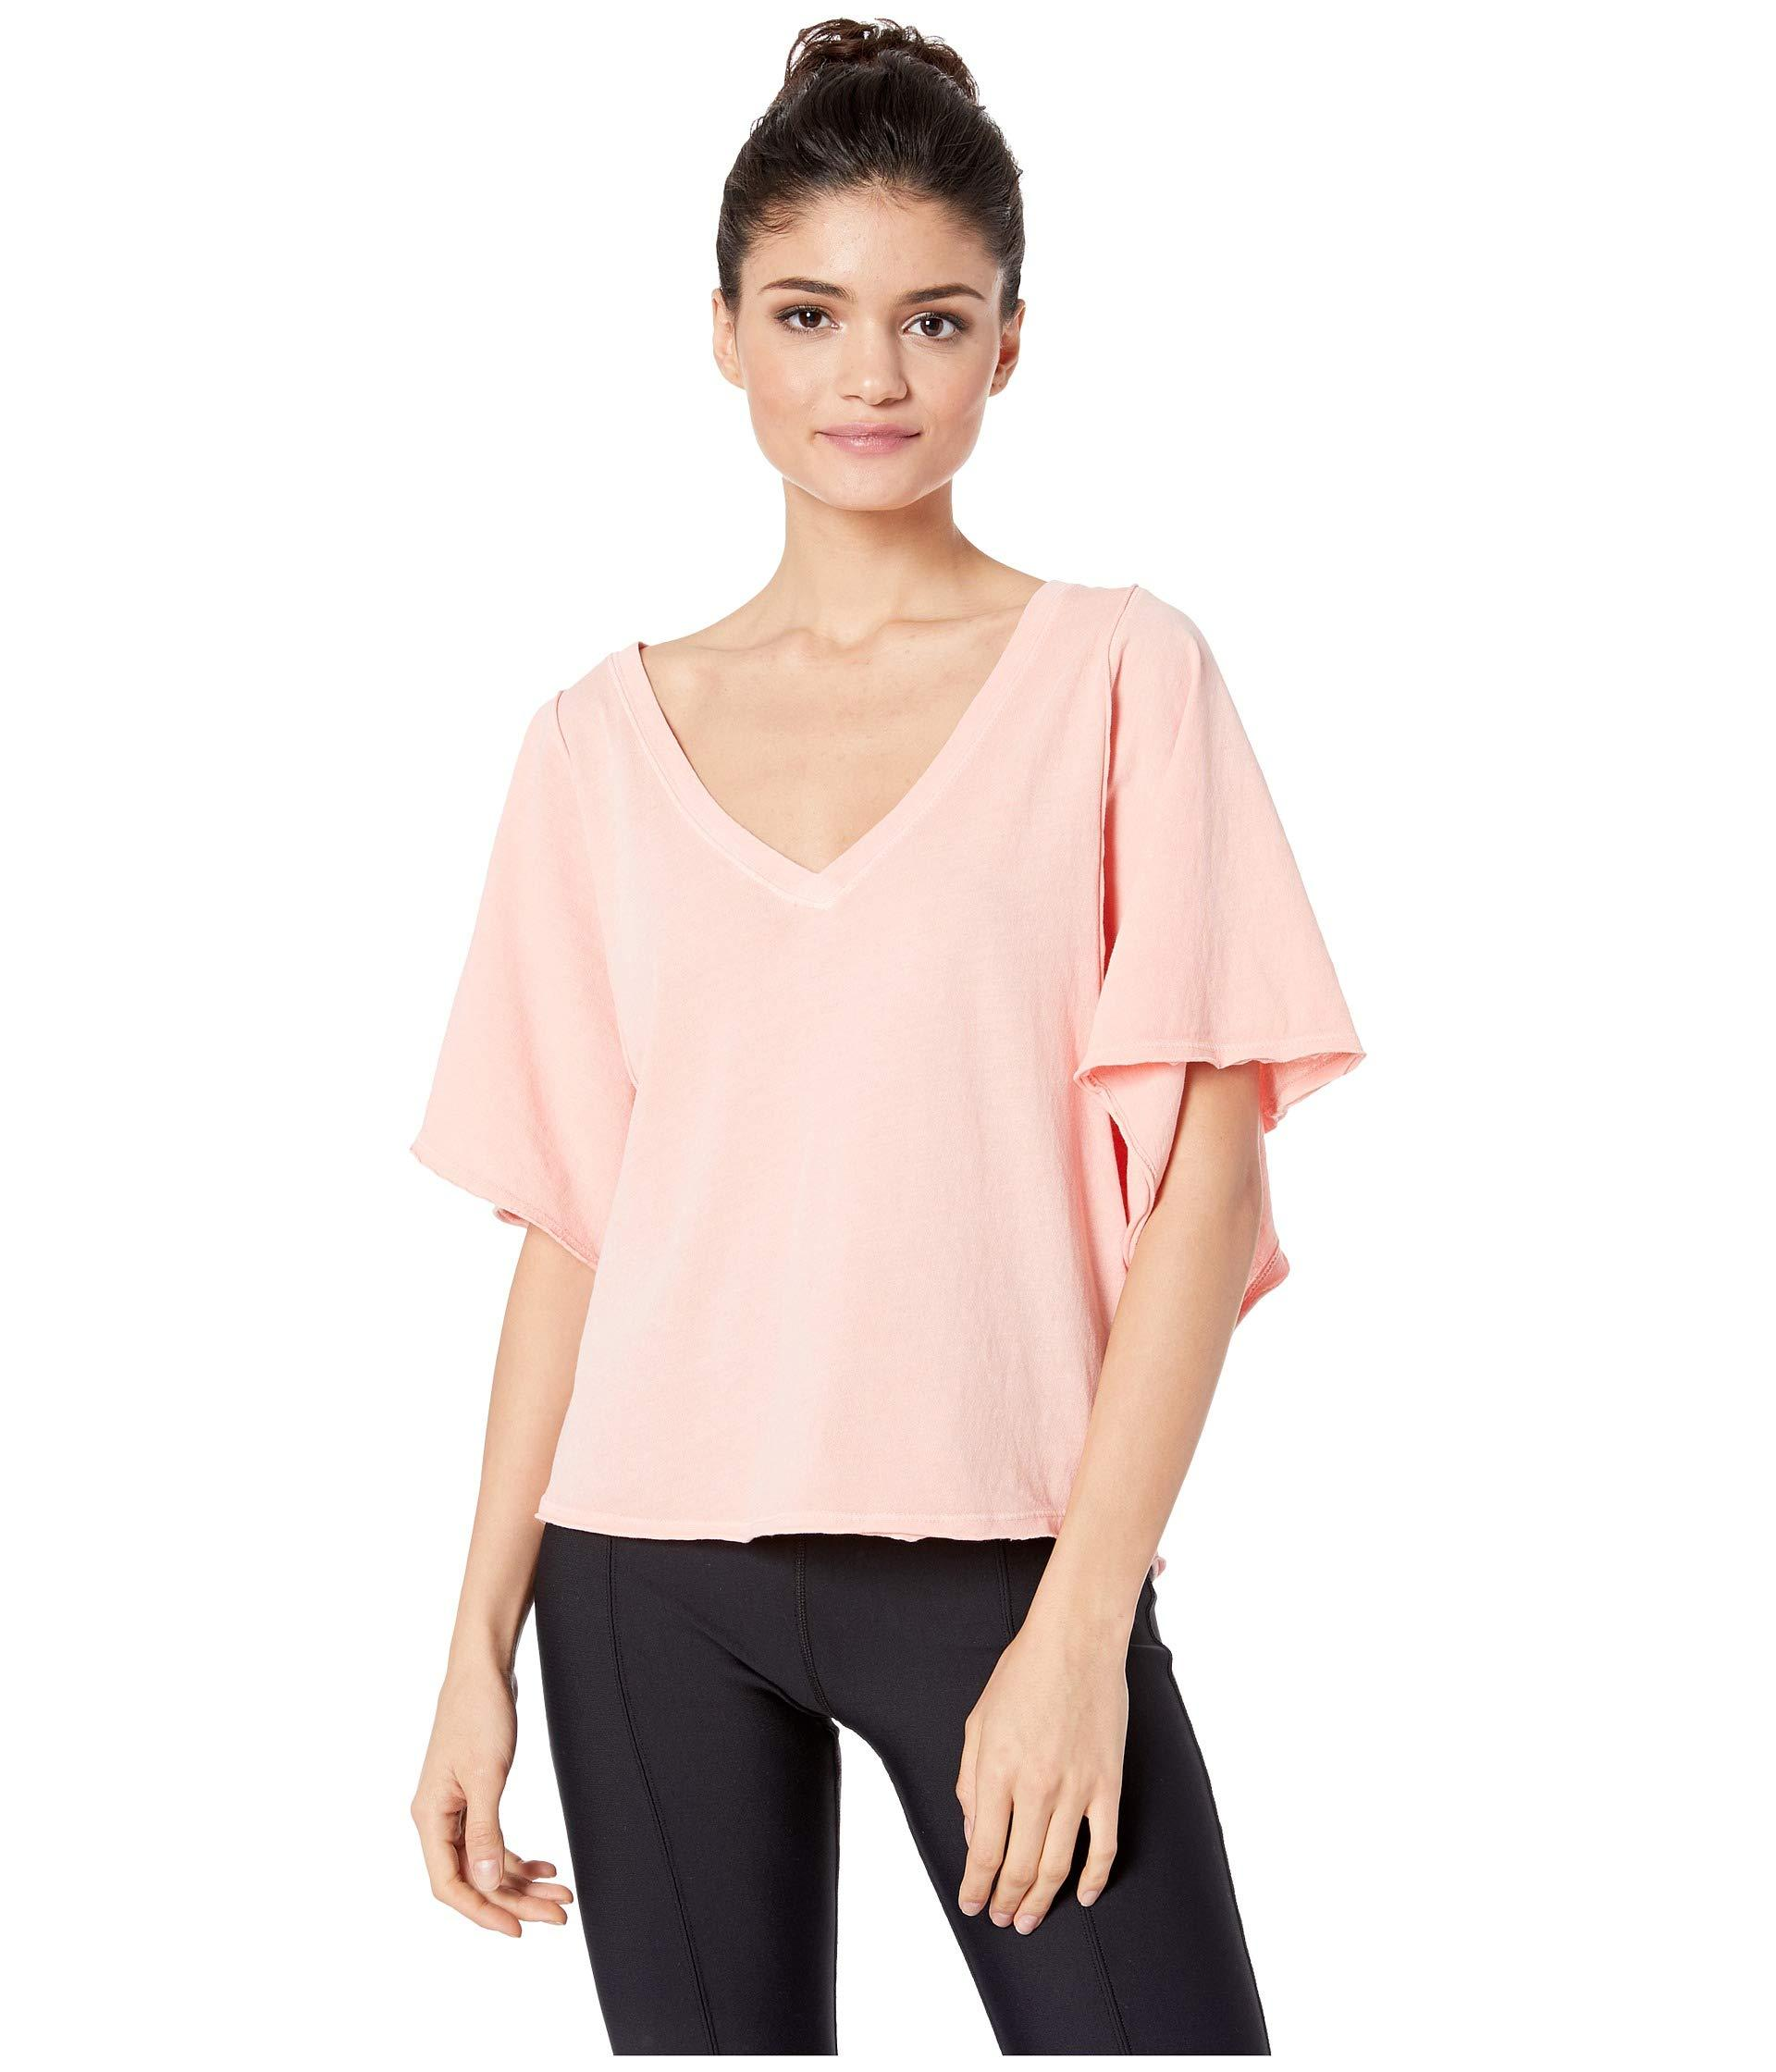 114a43c59d61d Lyst - Free People Artemis Tee (coral) Women s Clothing in Pink